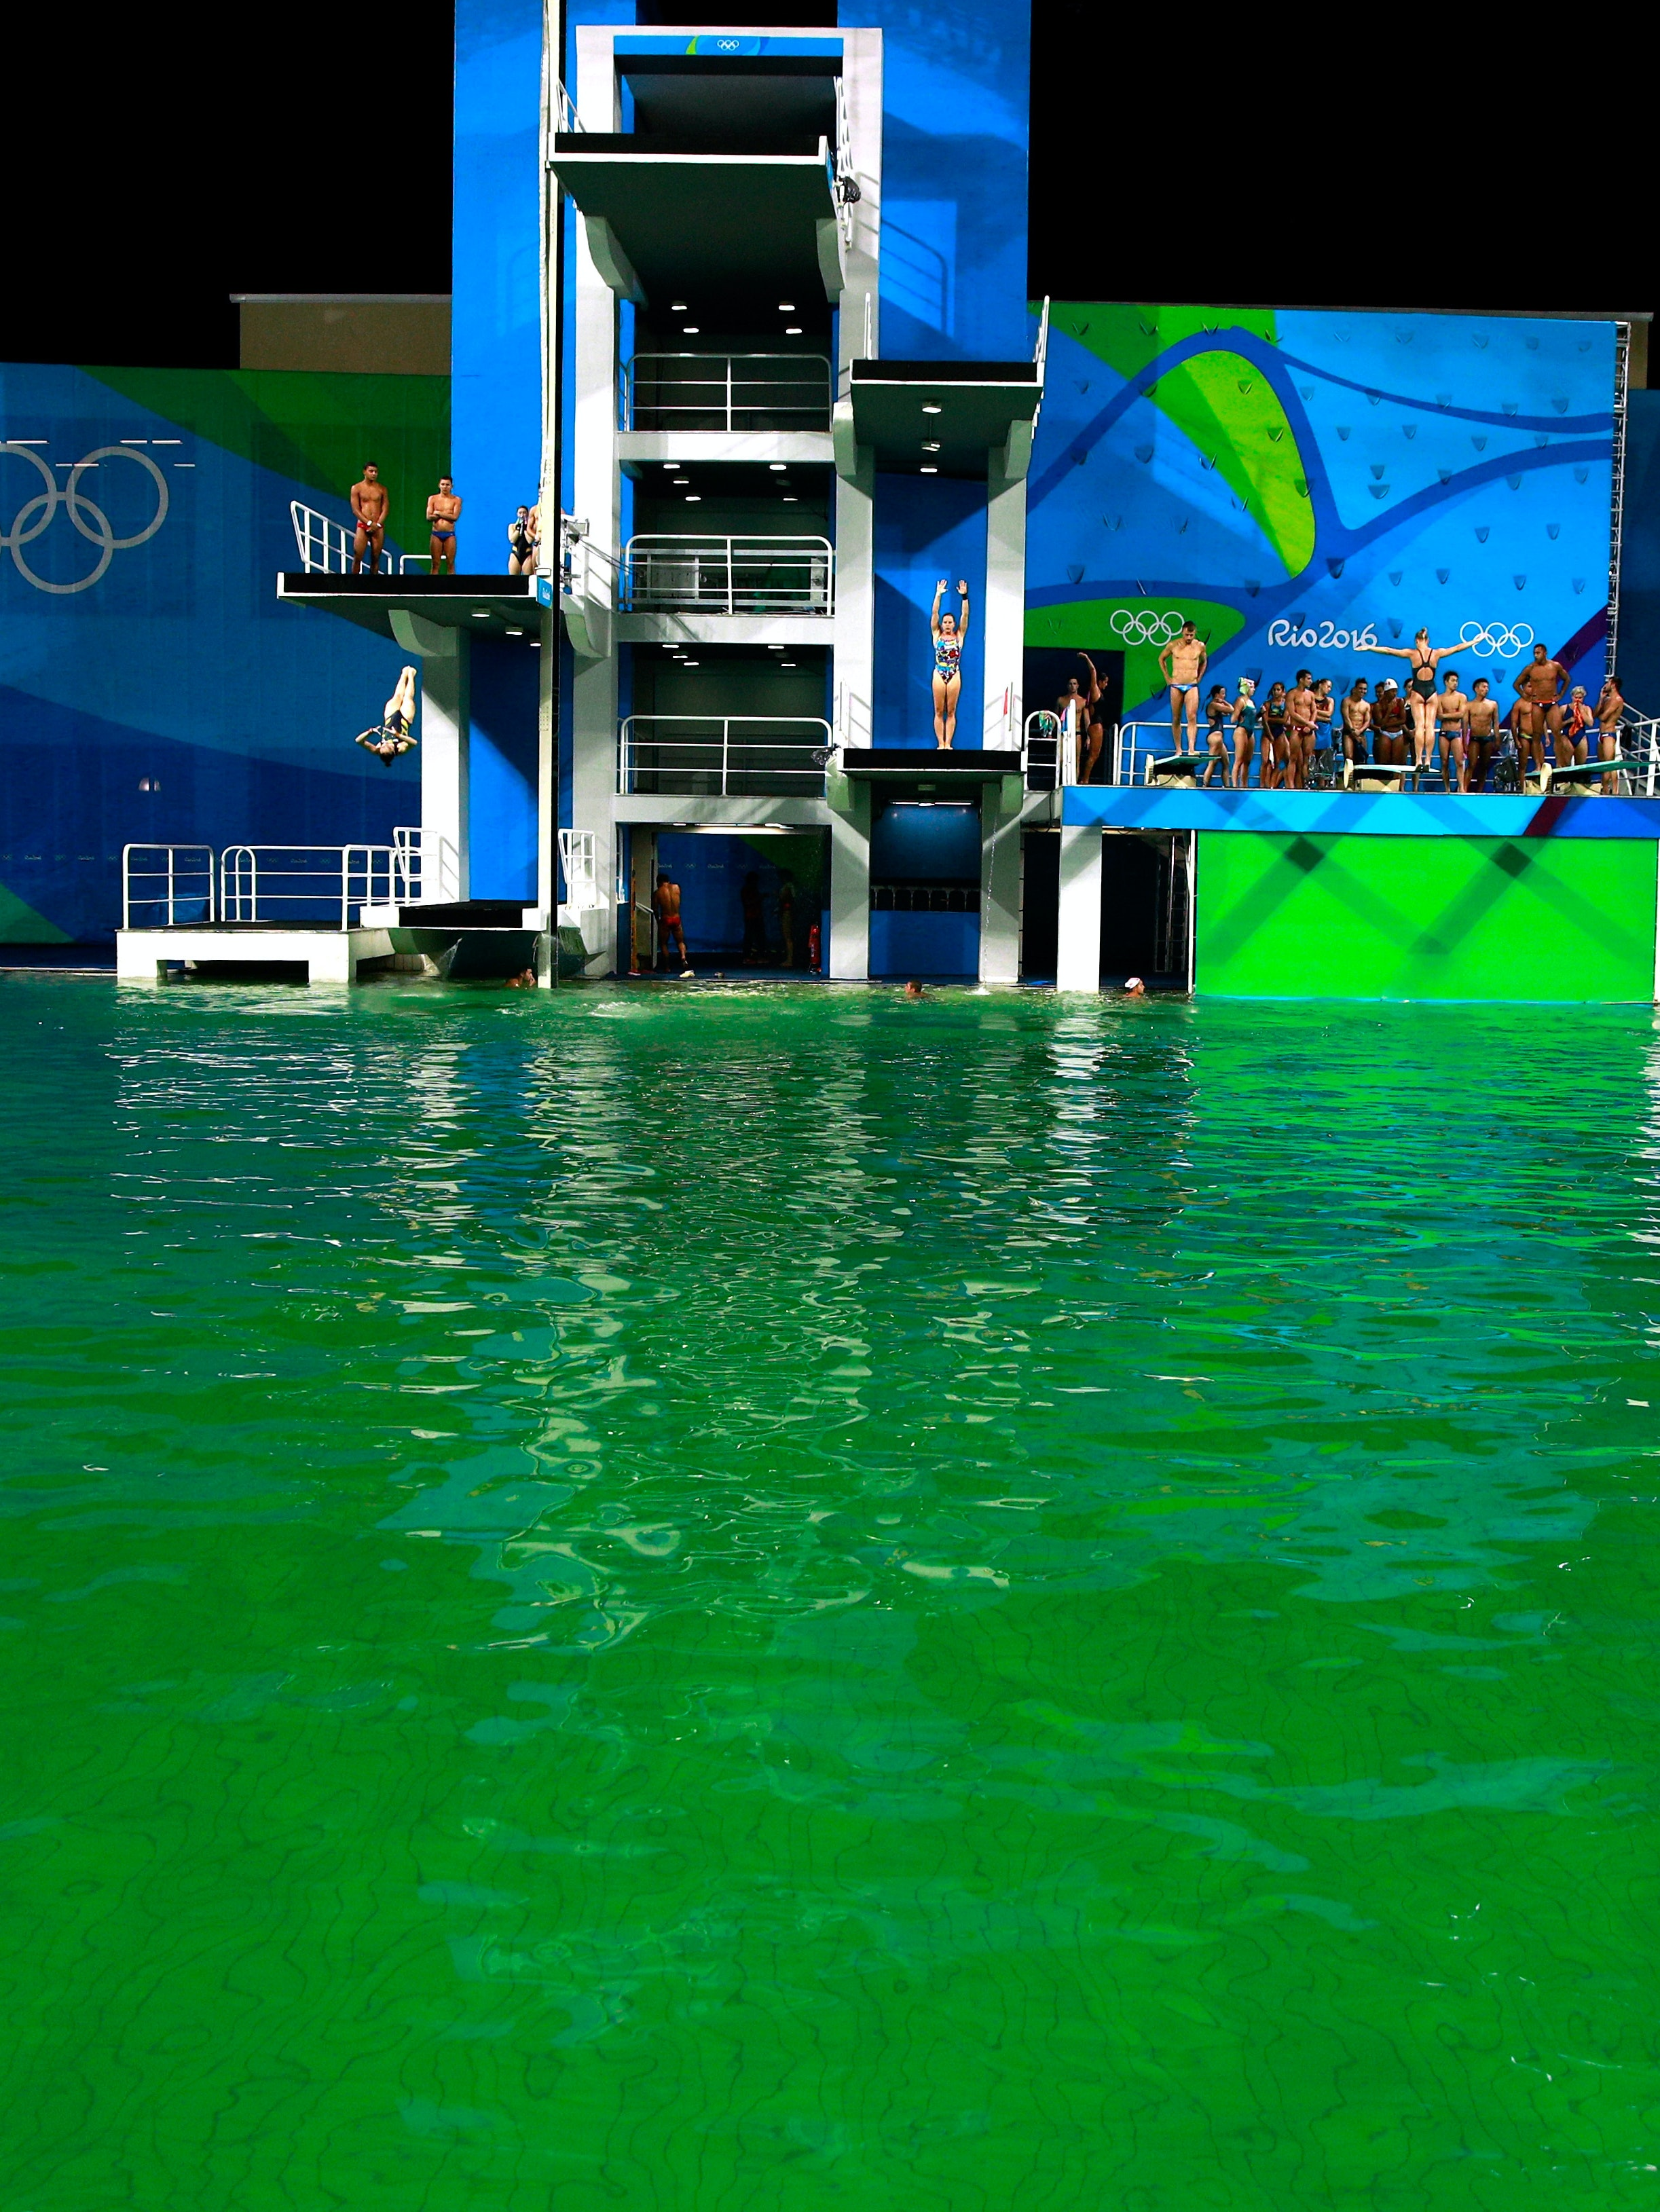 RIO DE JANEIRO, BRAZIL - AUGUST 09:  General view of the diving pool at Maria Lenk Aquatics Centre on Day 4 of the Rio 2016 Olympic Games on August 9, 2016 in Rio de Janeiro, Brazil.  (Photo by Adam Pretty/Getty Images)